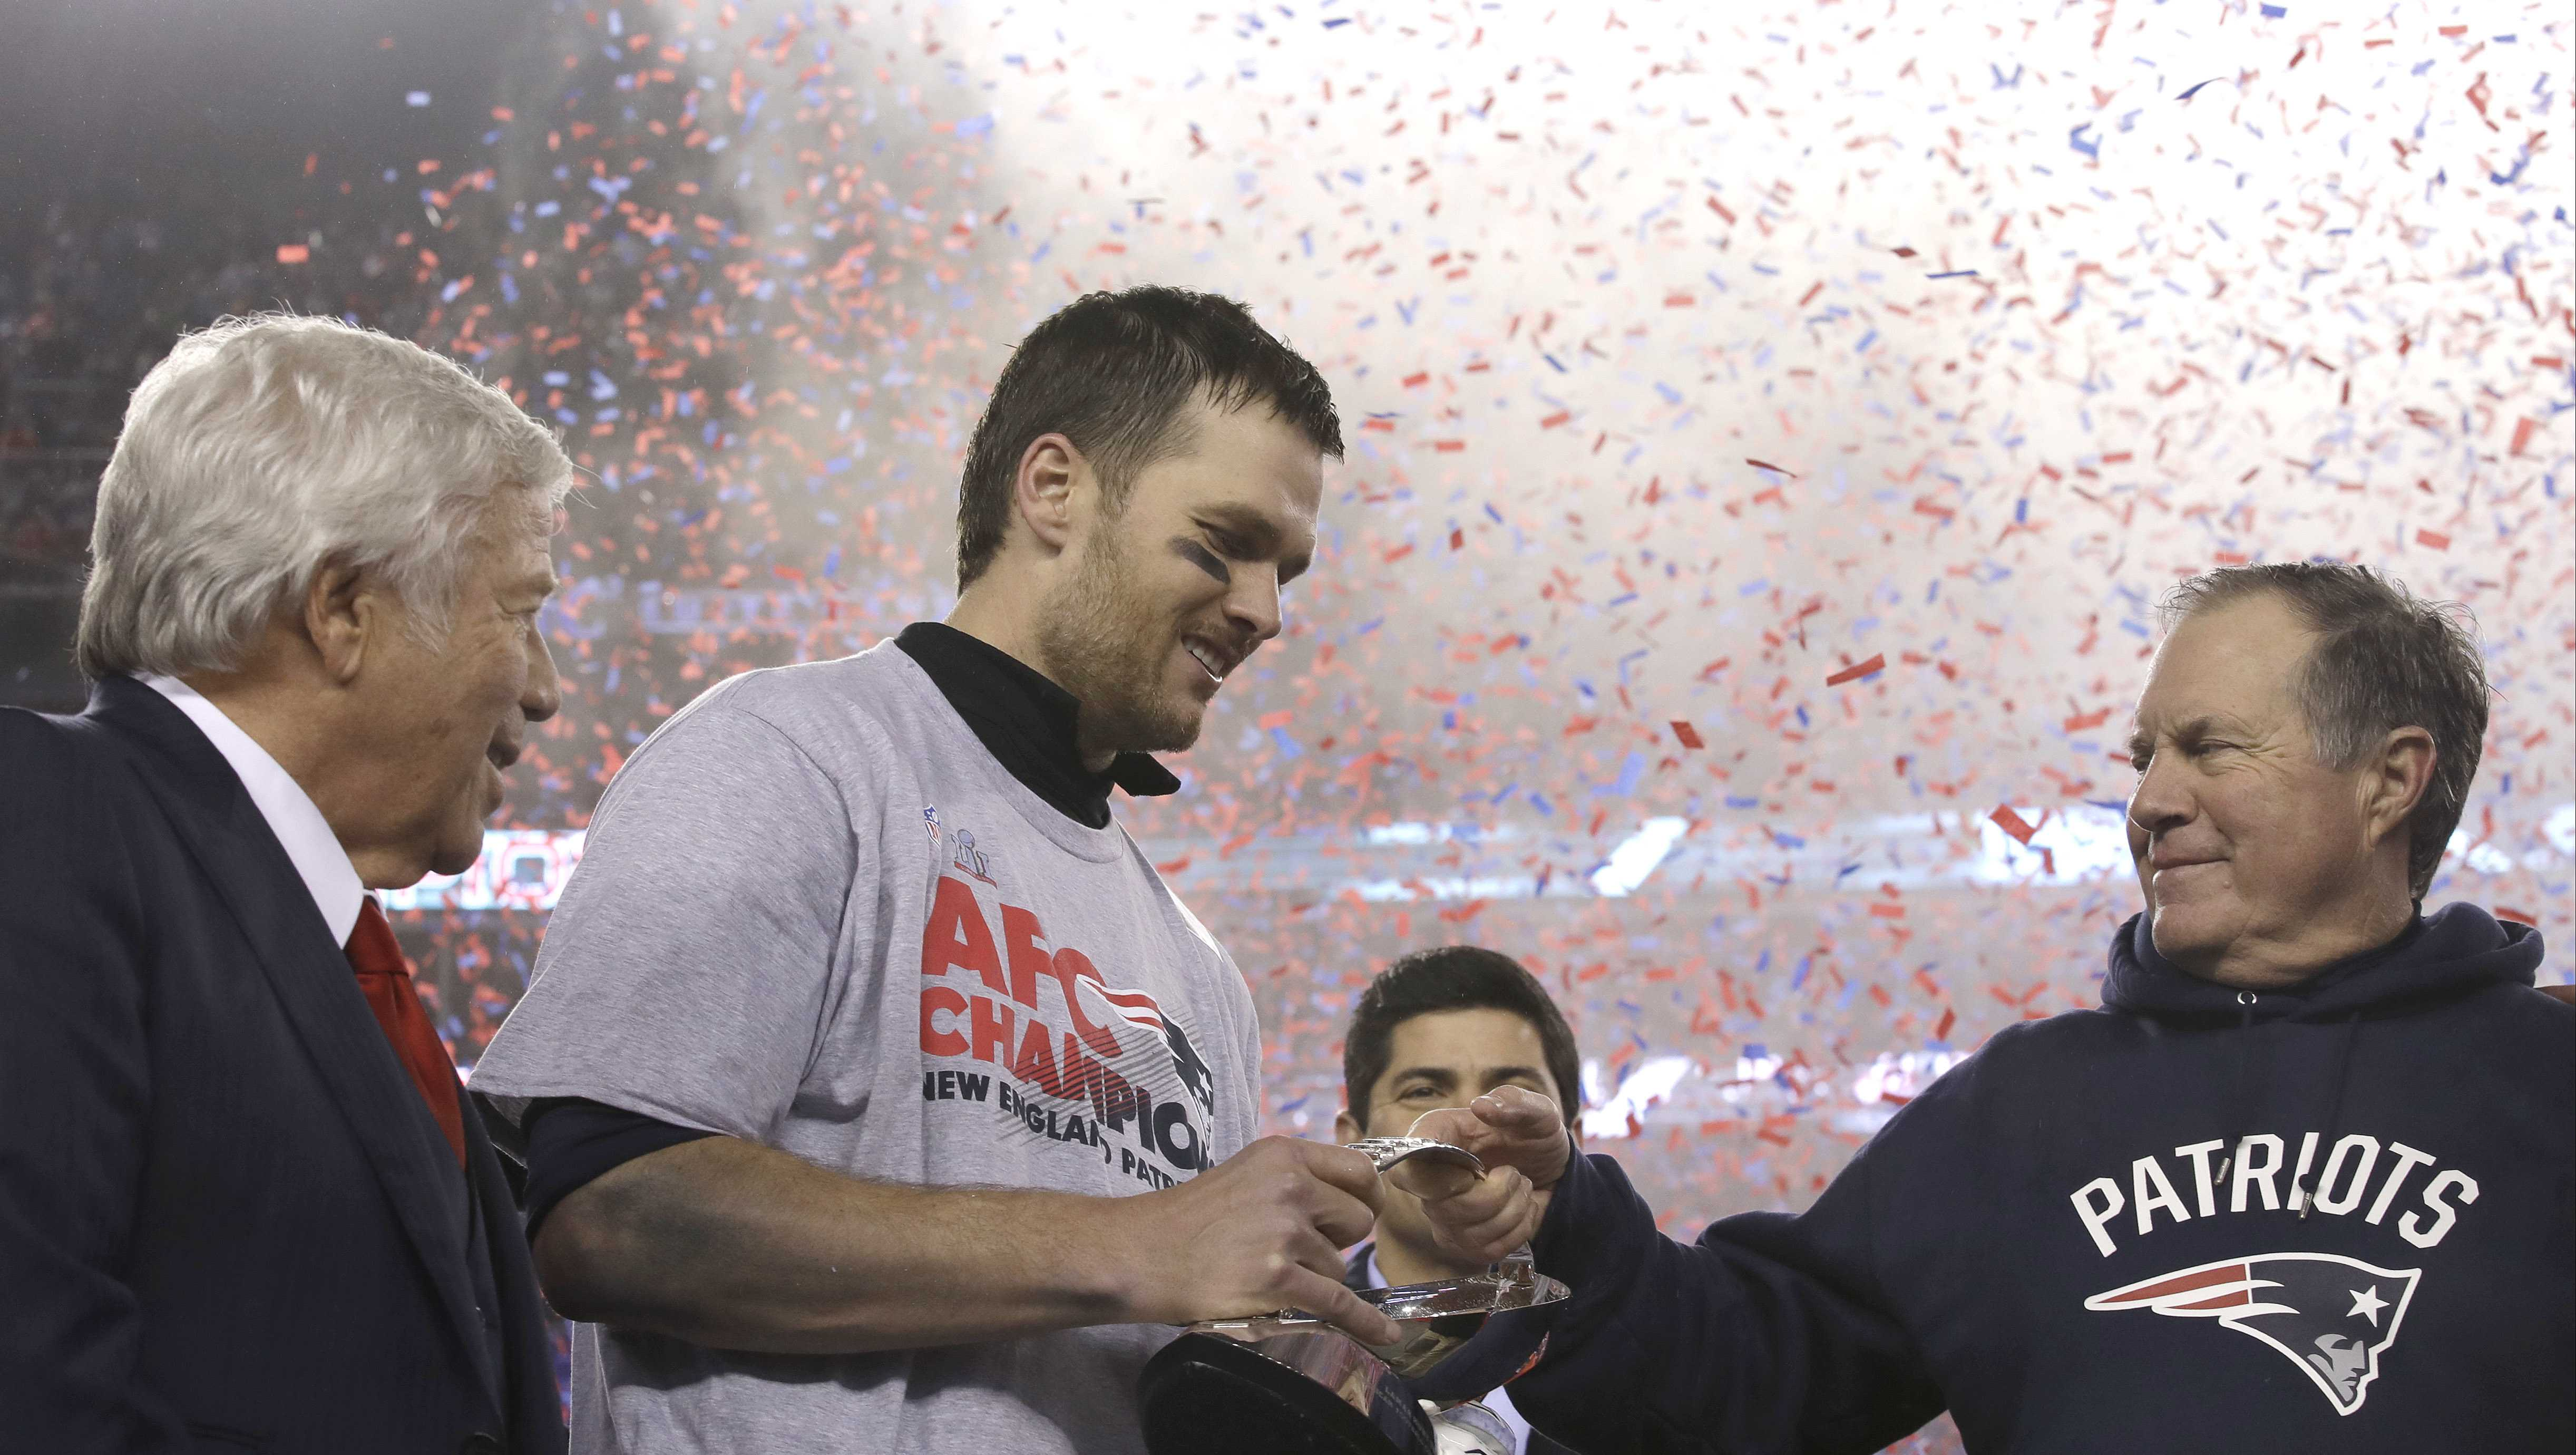 New England Patriots head coach Bill Belichick, right, passes the AFC Championship trophy to quarterback Tom Brady after winning the AFC championship NFL football game against the Pittsburgh Steelers, Sunday, Jan. 22, 2017, in Foxborough, Mass. At left is team owner Robert Kraft. The Patriots defeated the the Steelers 36-17 to advance to the Super Bowl.